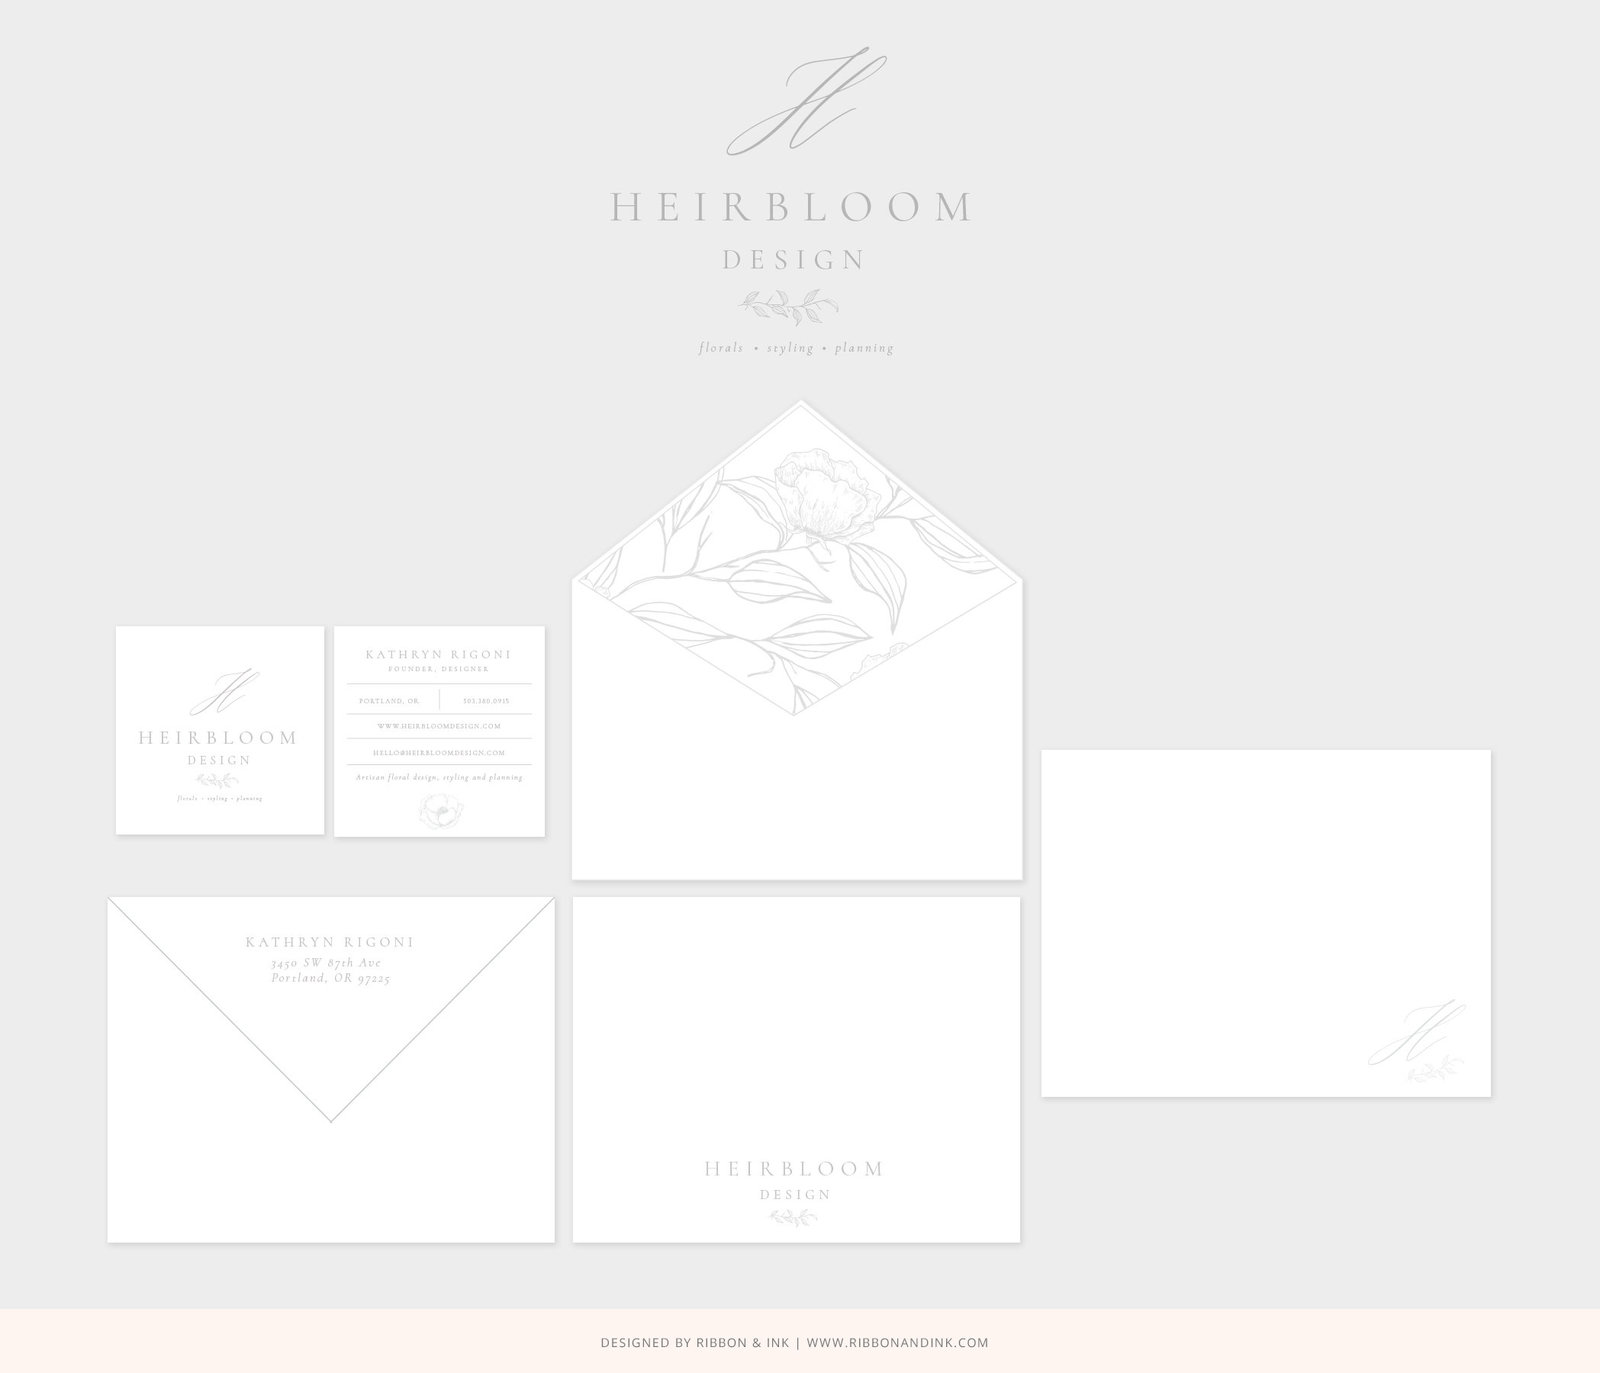 Heirbloom_Stationery_v02